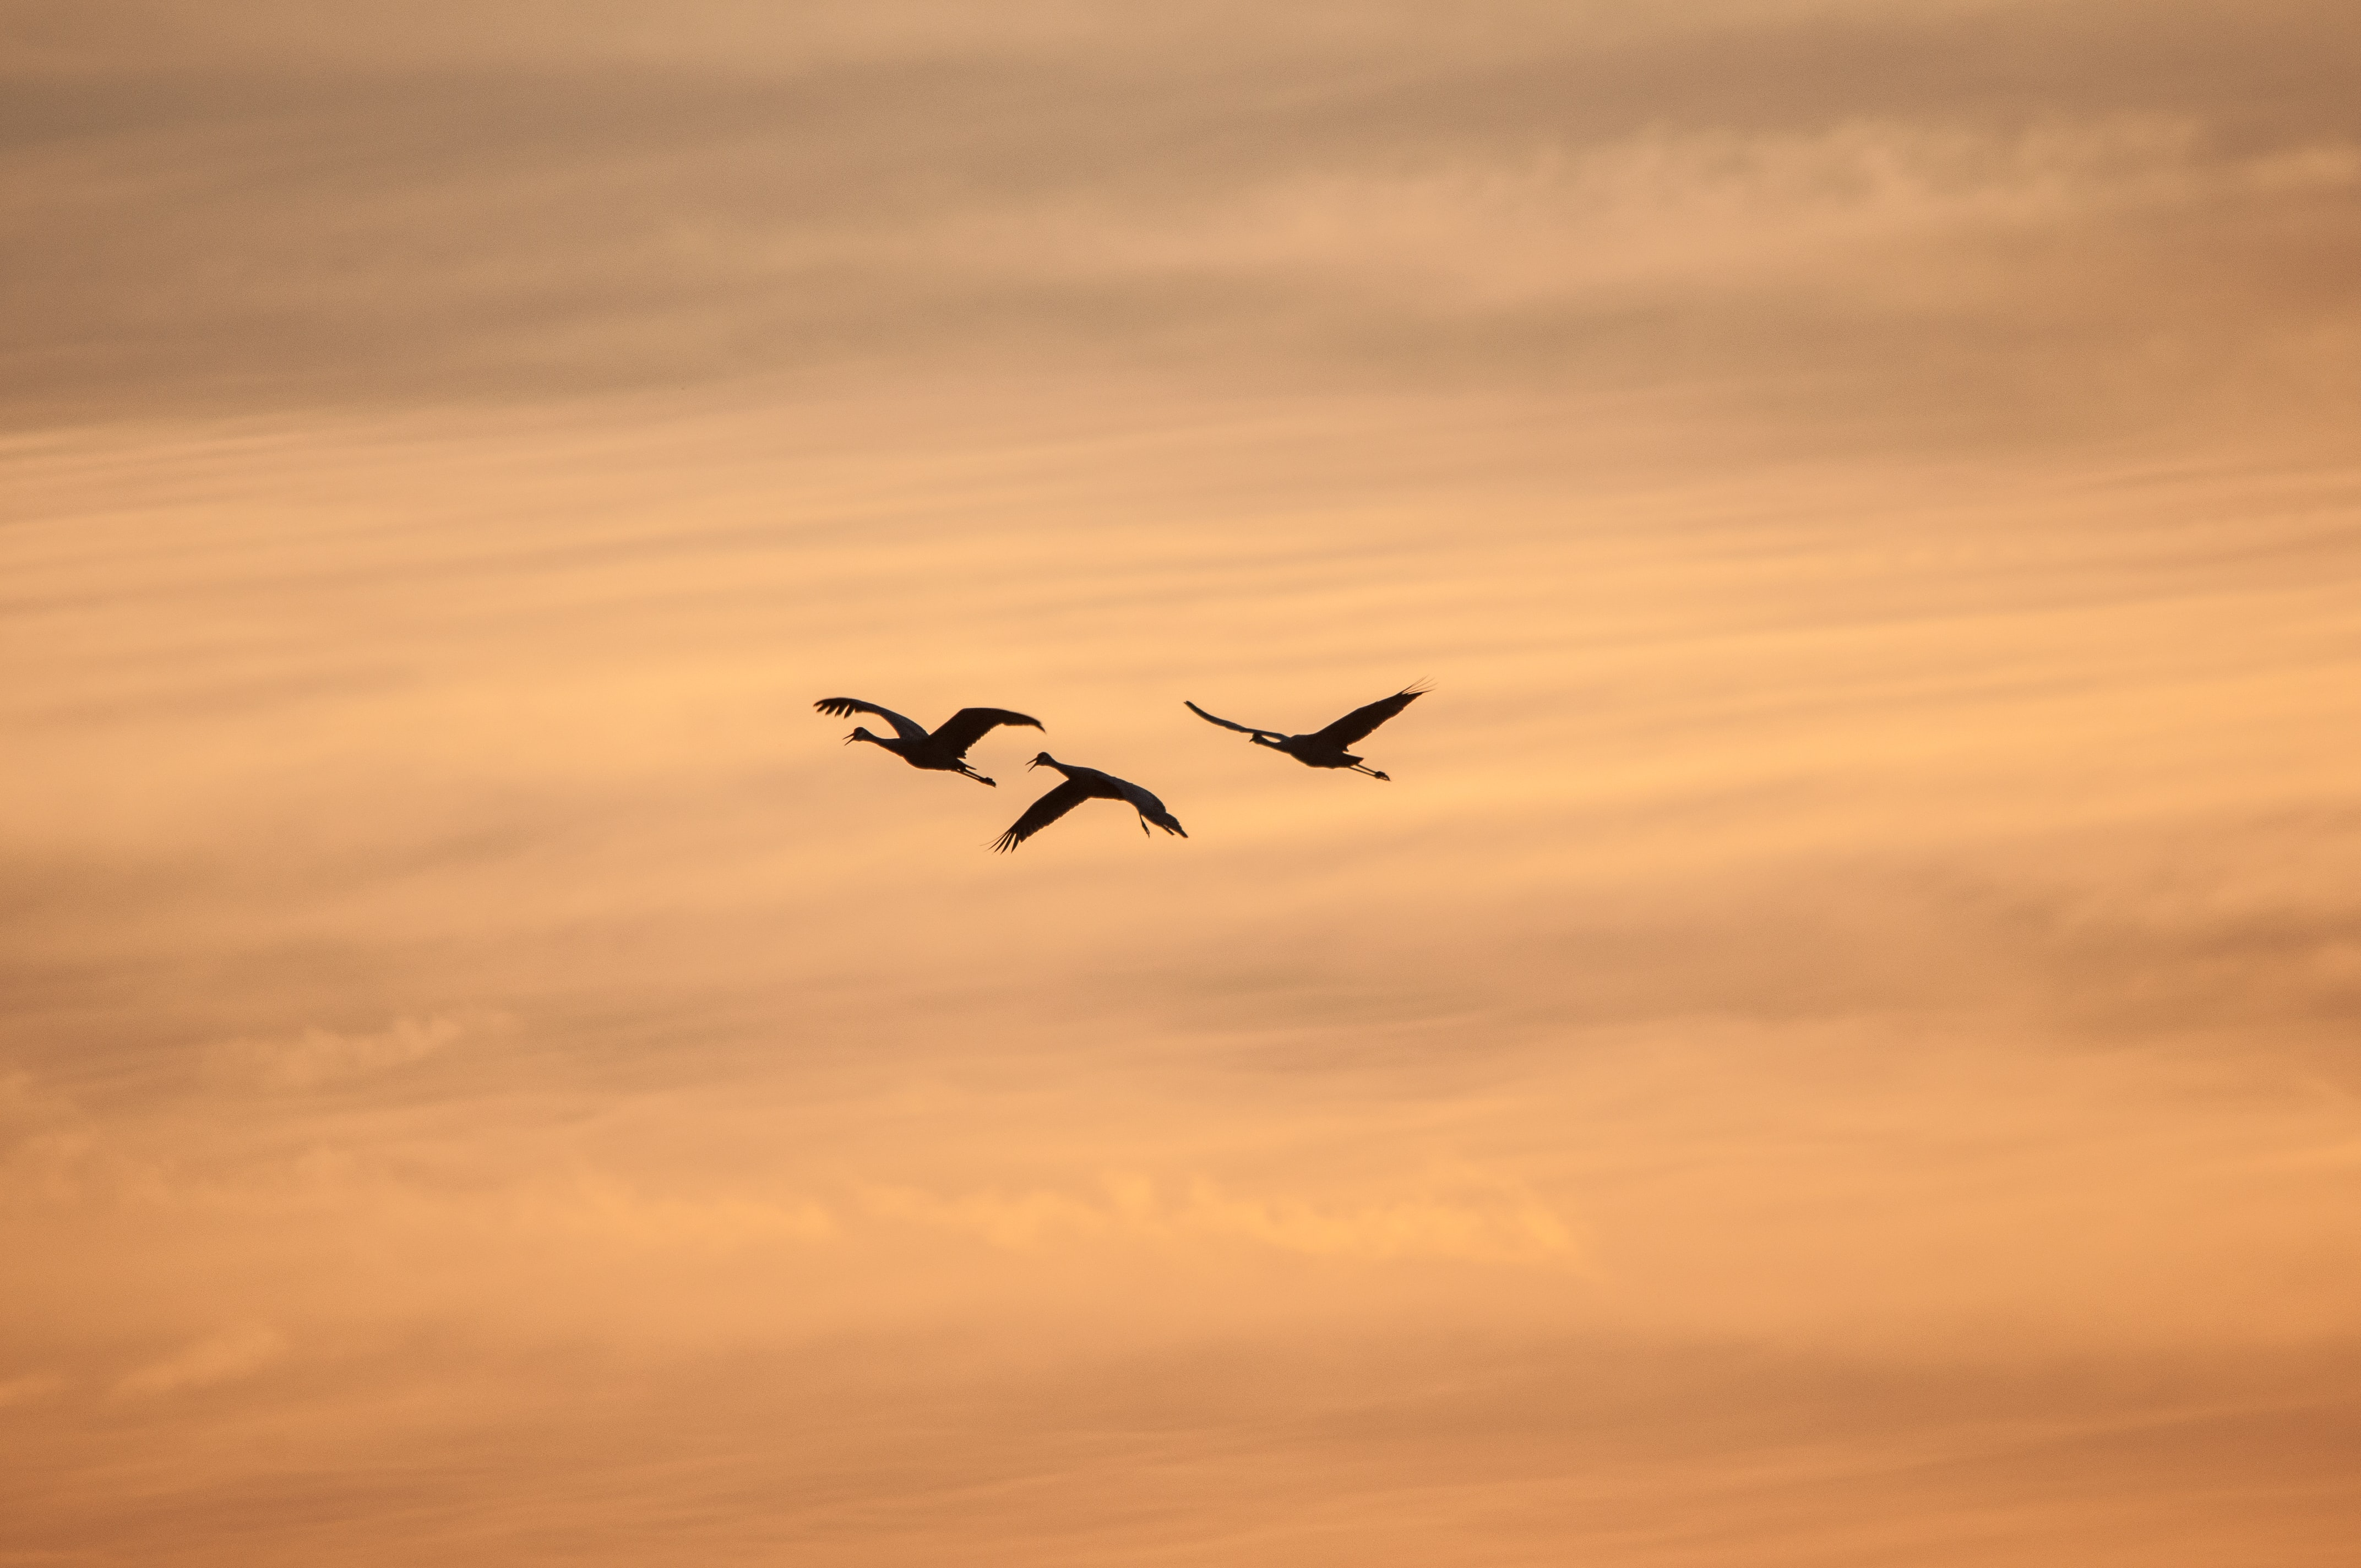 silhouette of three birds flying during sunset